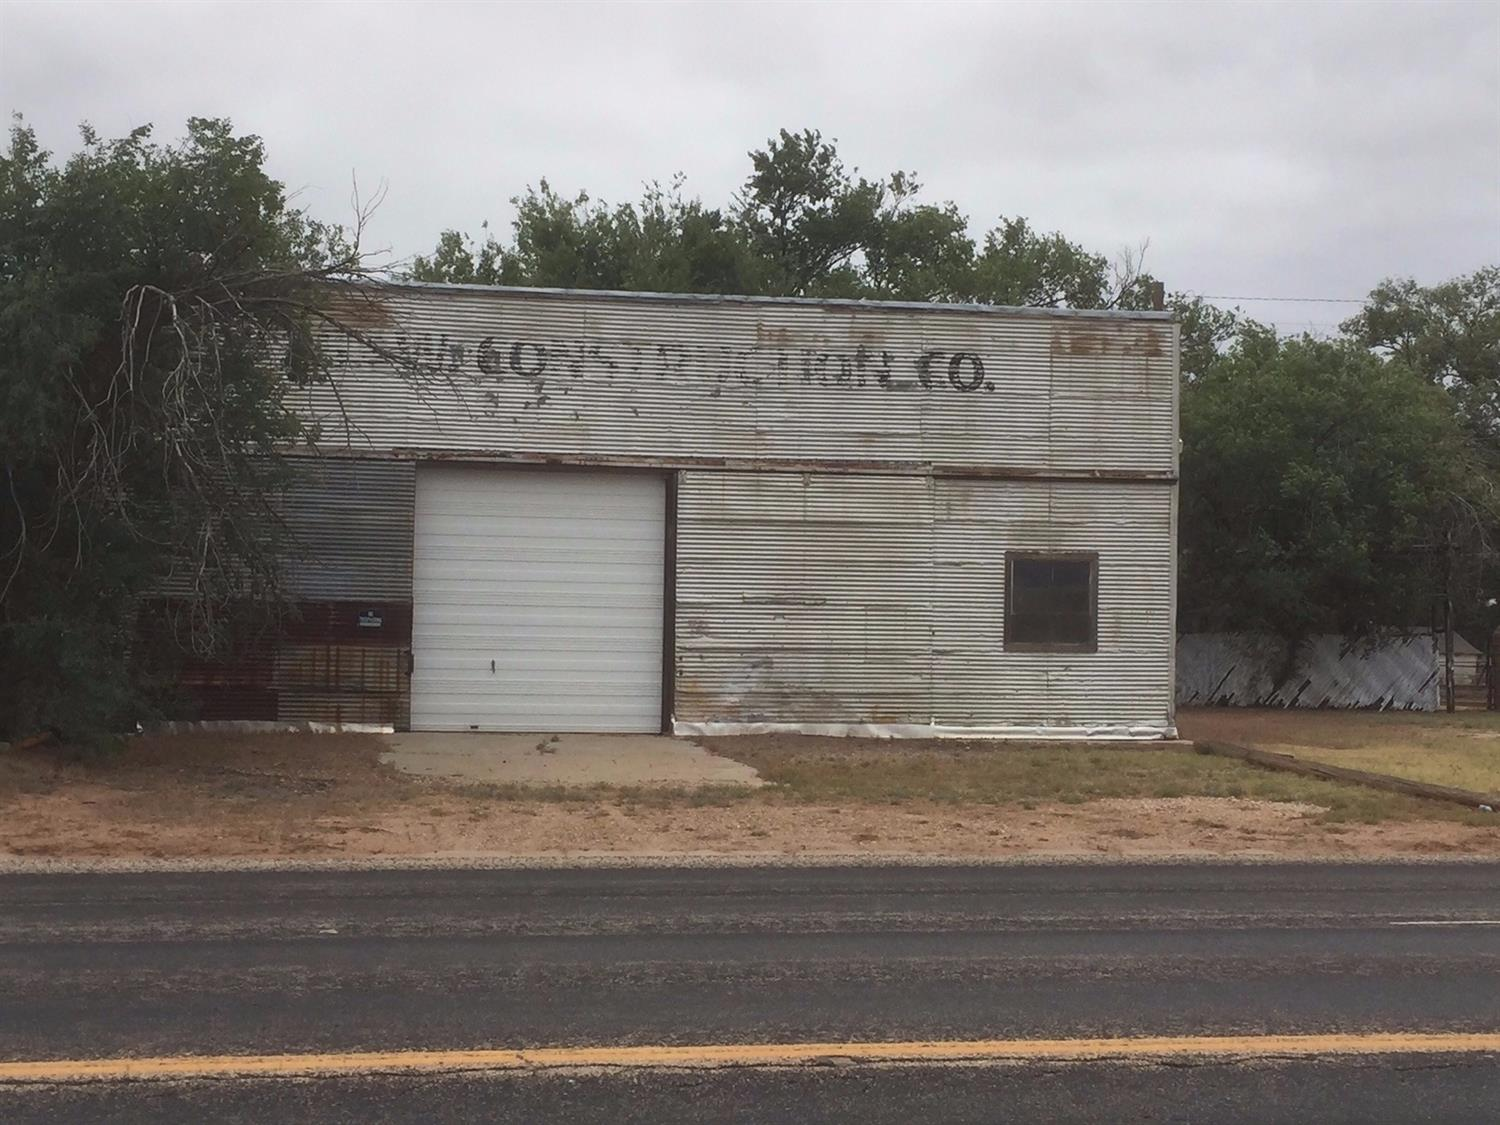 Metal Warehouse Building in Sundown.  Almost 1/2 acre corner lot with 3100 sq. ft. building with extra tall walls, 1 overhead and 2 large sliding door accesses.  Plus 20' x 40' metal carport and small fenced storage yard.  Very Affordable!  Call Today!